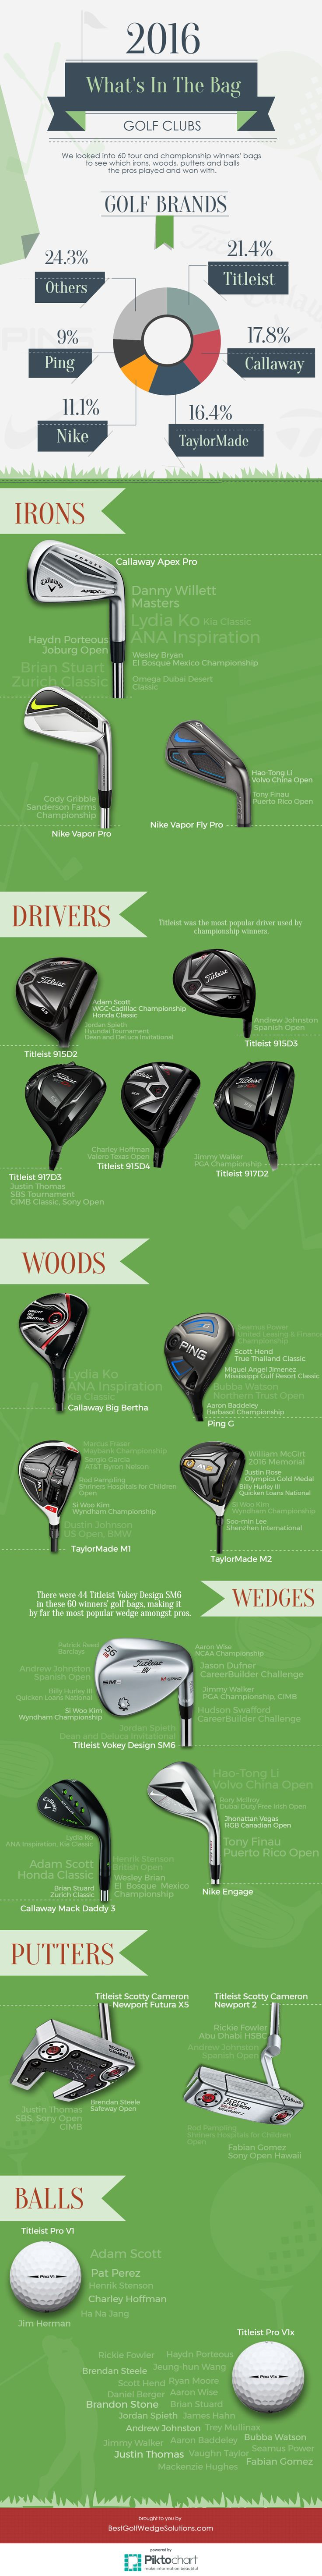 Infographics Whats In The Bag 2016 Most Popular Golf Clubs. #golf #pga #golfquotes #titleist #ping #callaway #nike #taylormade